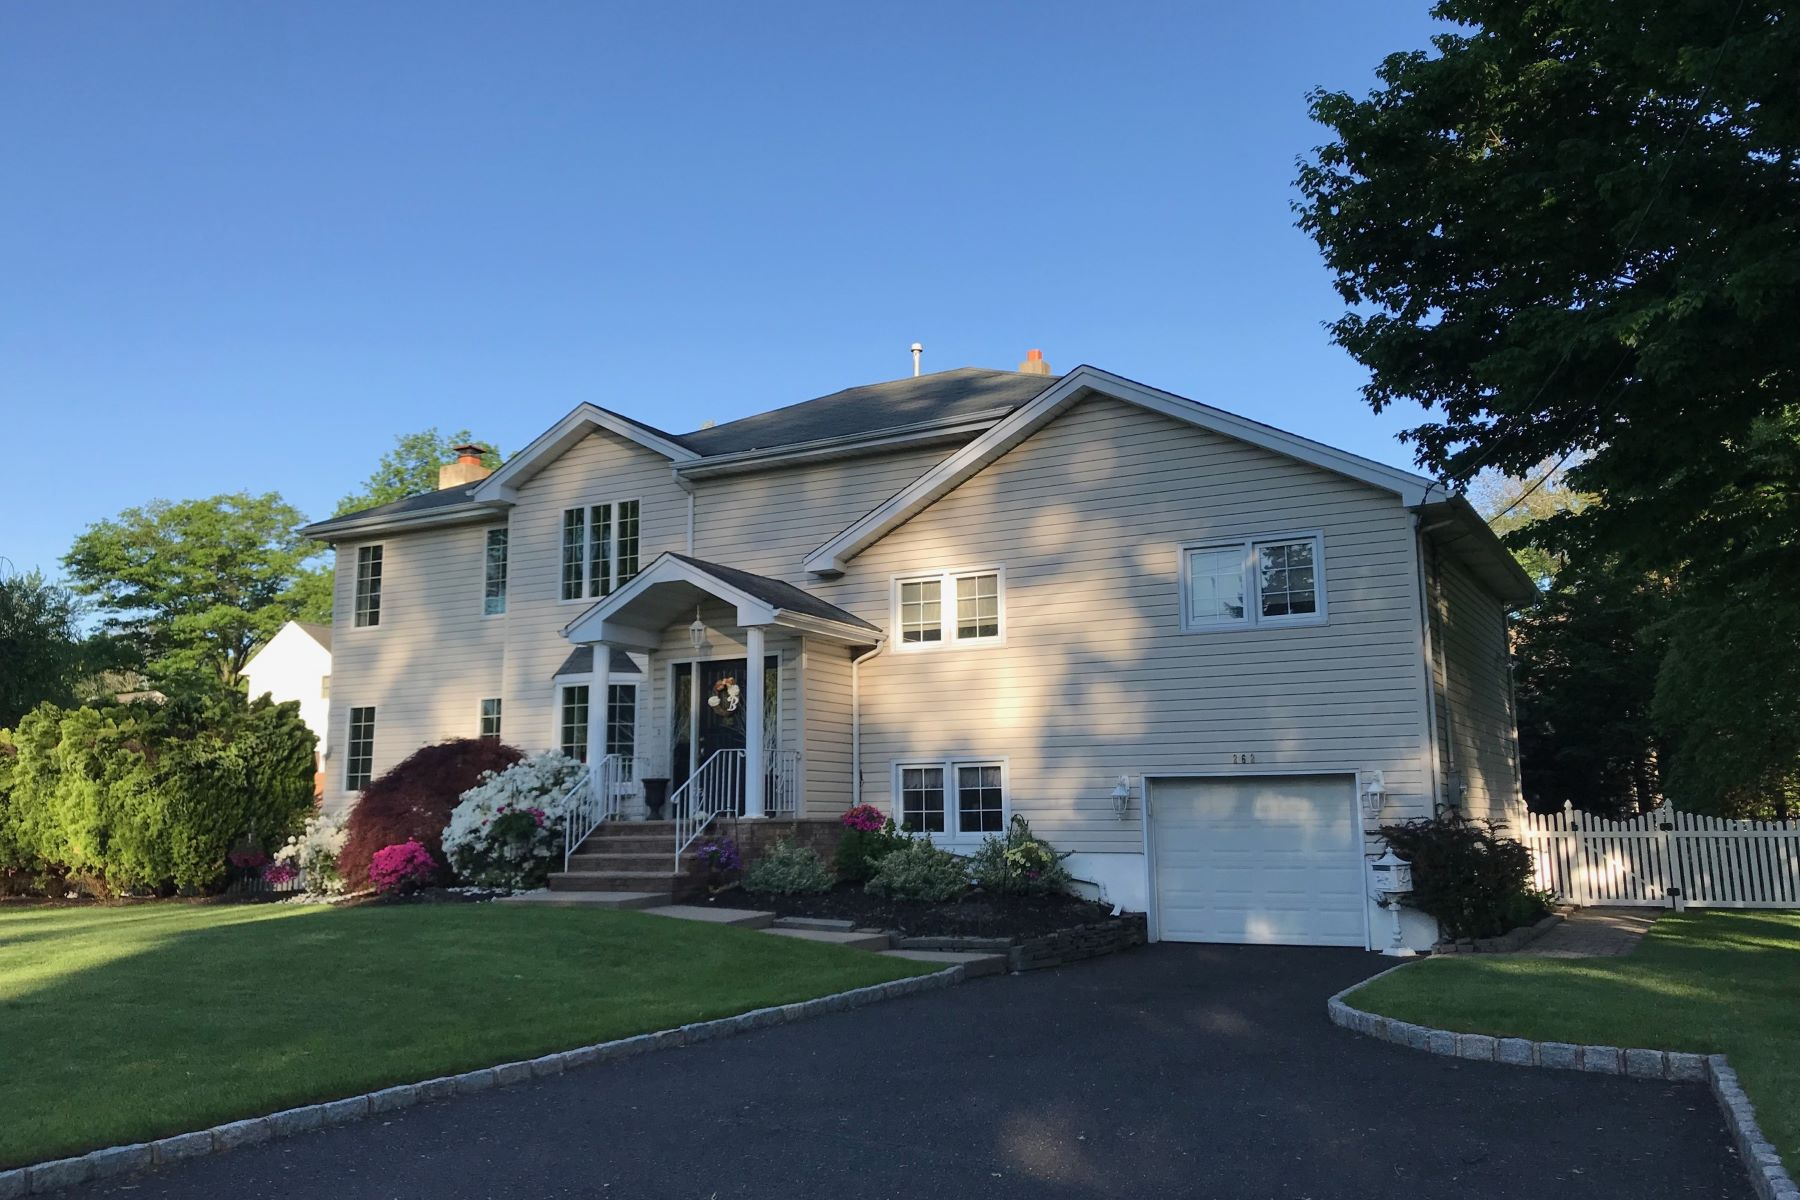 Single Family Homes for Sale at Prestigious Schlagel Lake Community 262 Woodfield Rd Township Of Washington, New Jersey 07676 United States